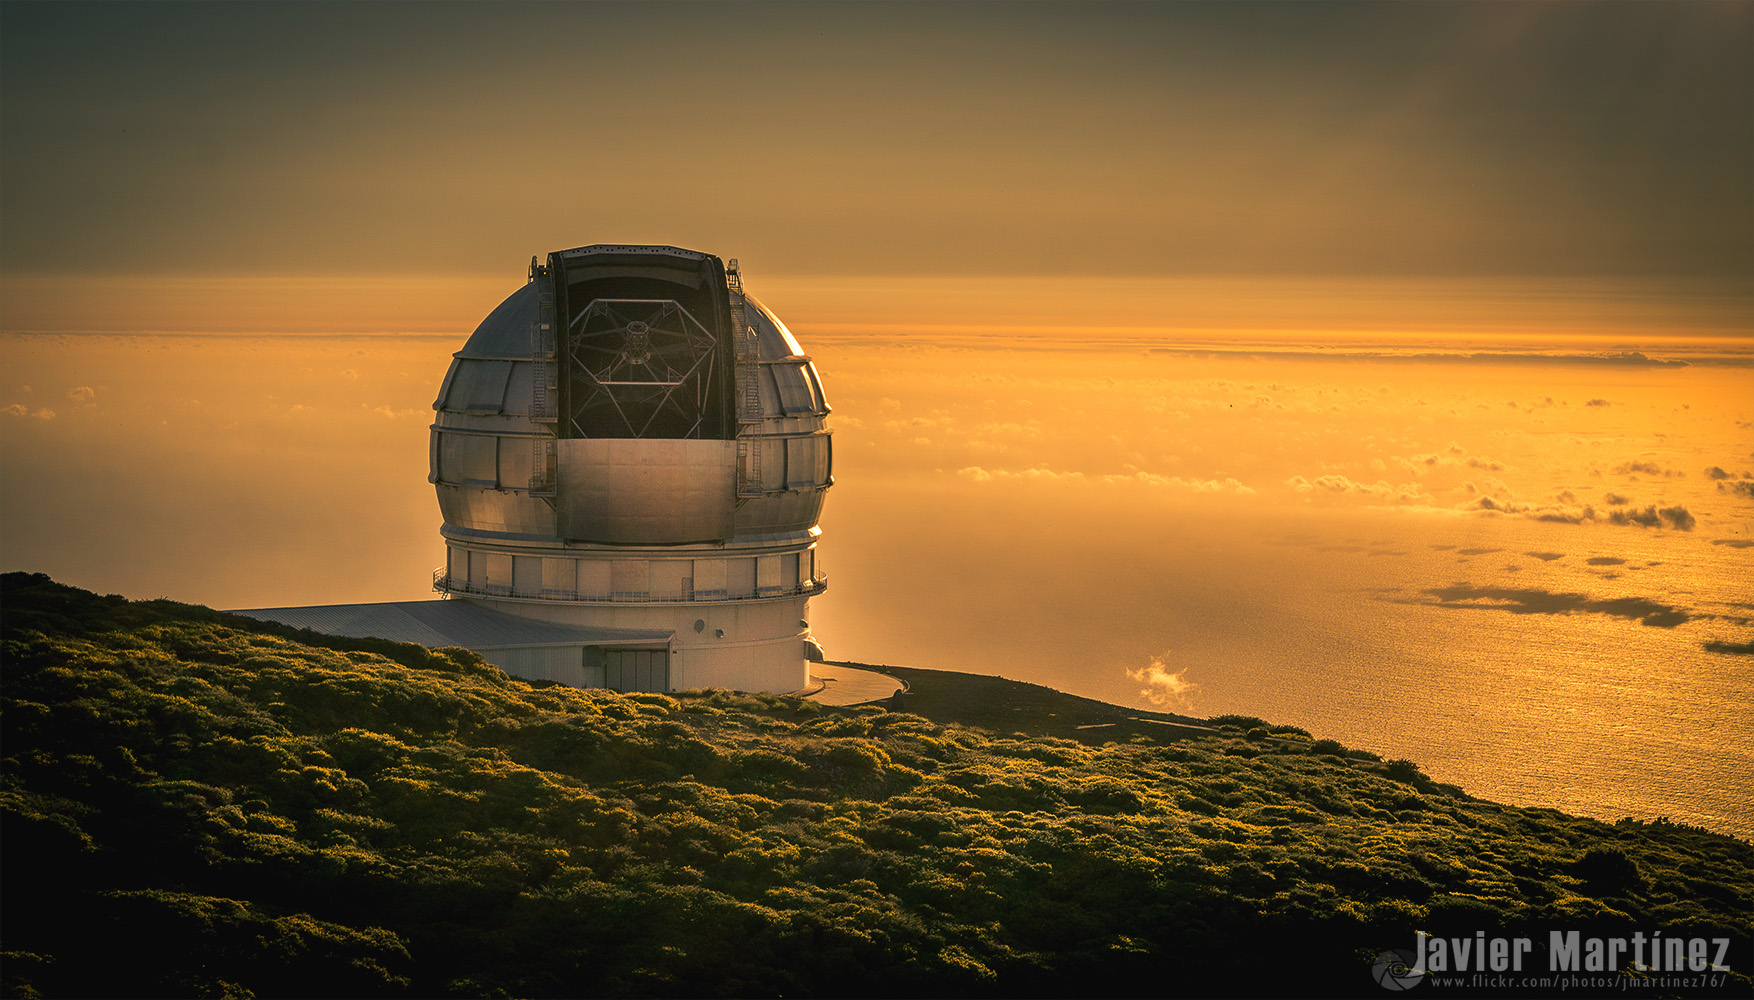 The Gran Telescopio Canarias on La Palma, Spain (credit: Javier Martinez Moran (CC BY-NC 2.0))